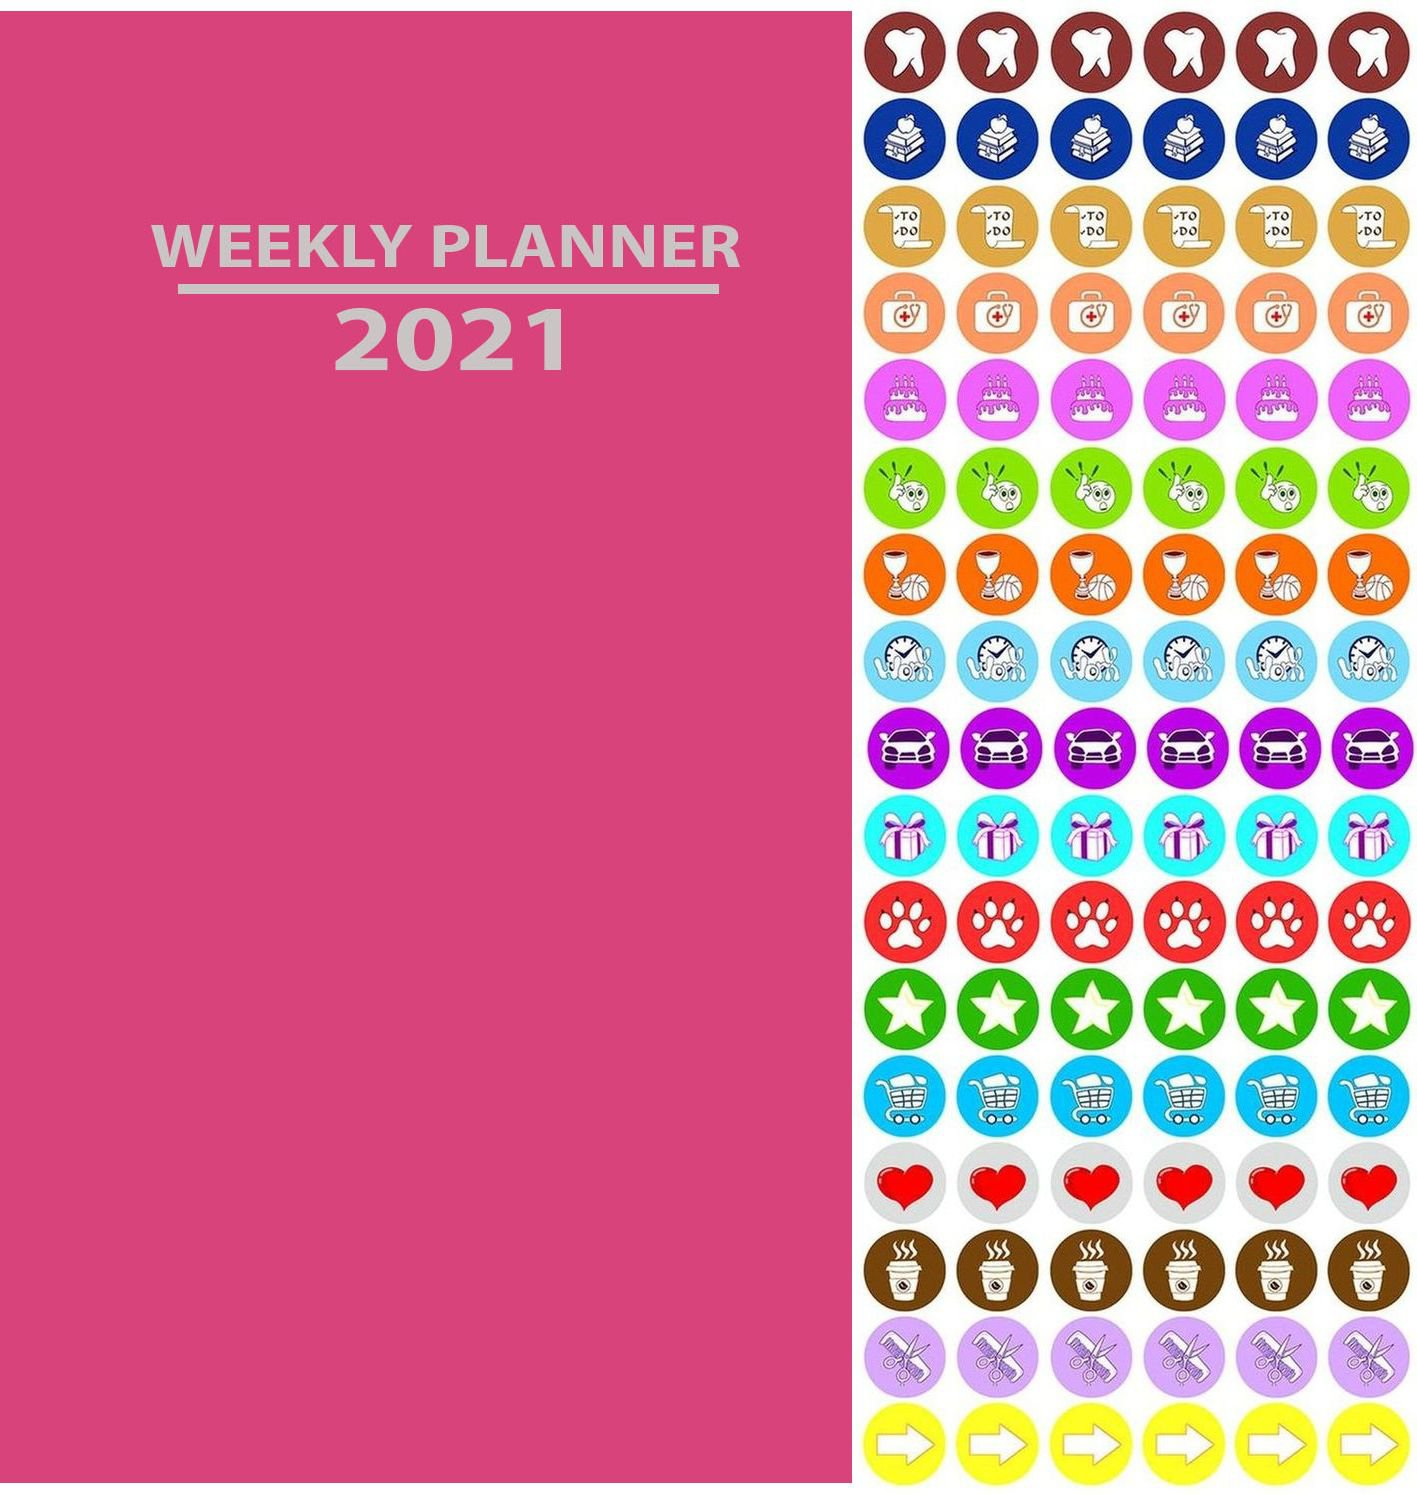 2020 Weekly Pocket Appointment Planner/Calendar/Organizer (Pink) - with 100 Reminder Stickers